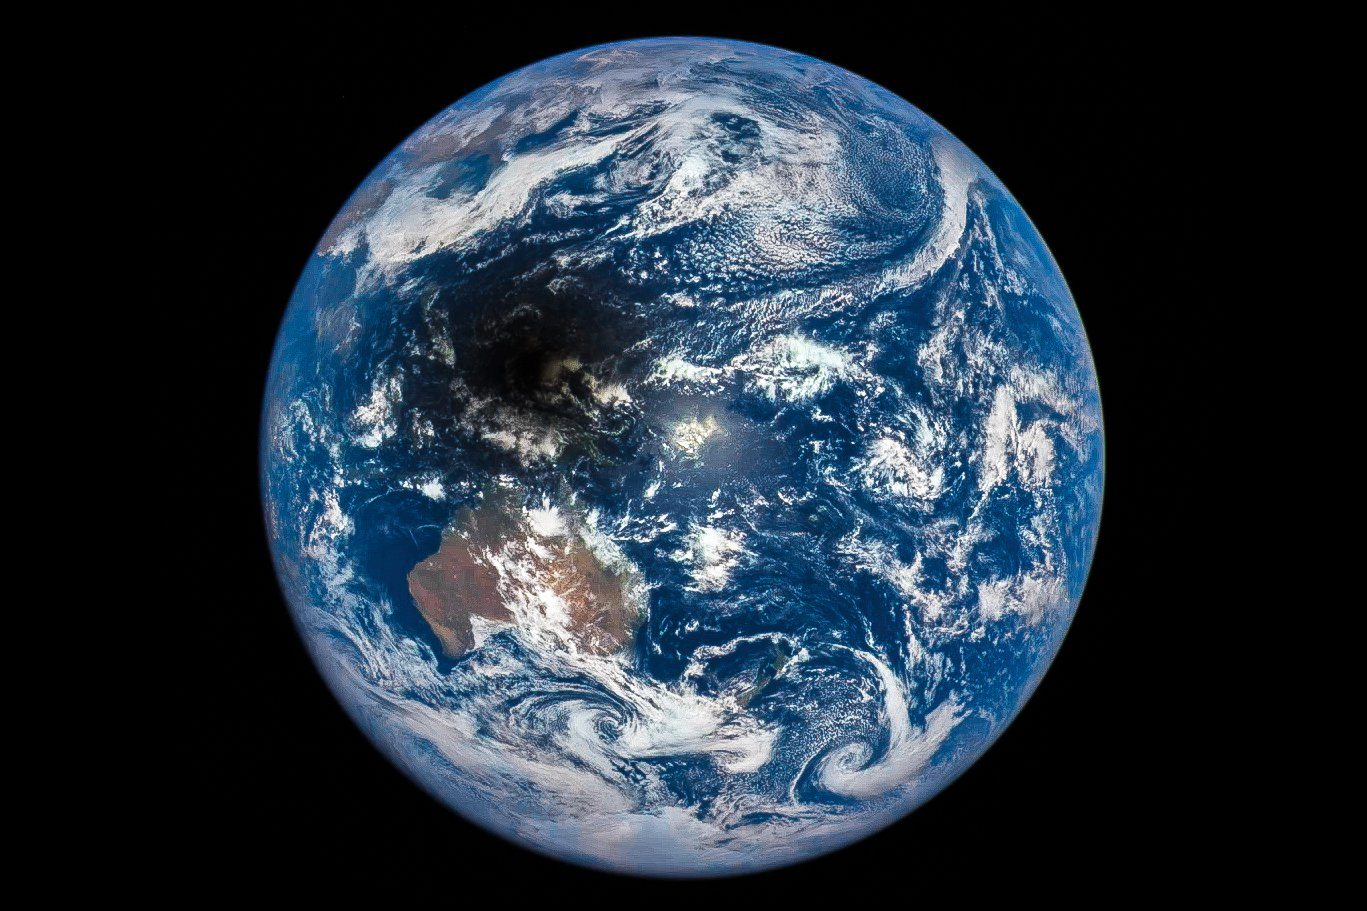 Image Credit: NASA, NOAA/DSCOVR